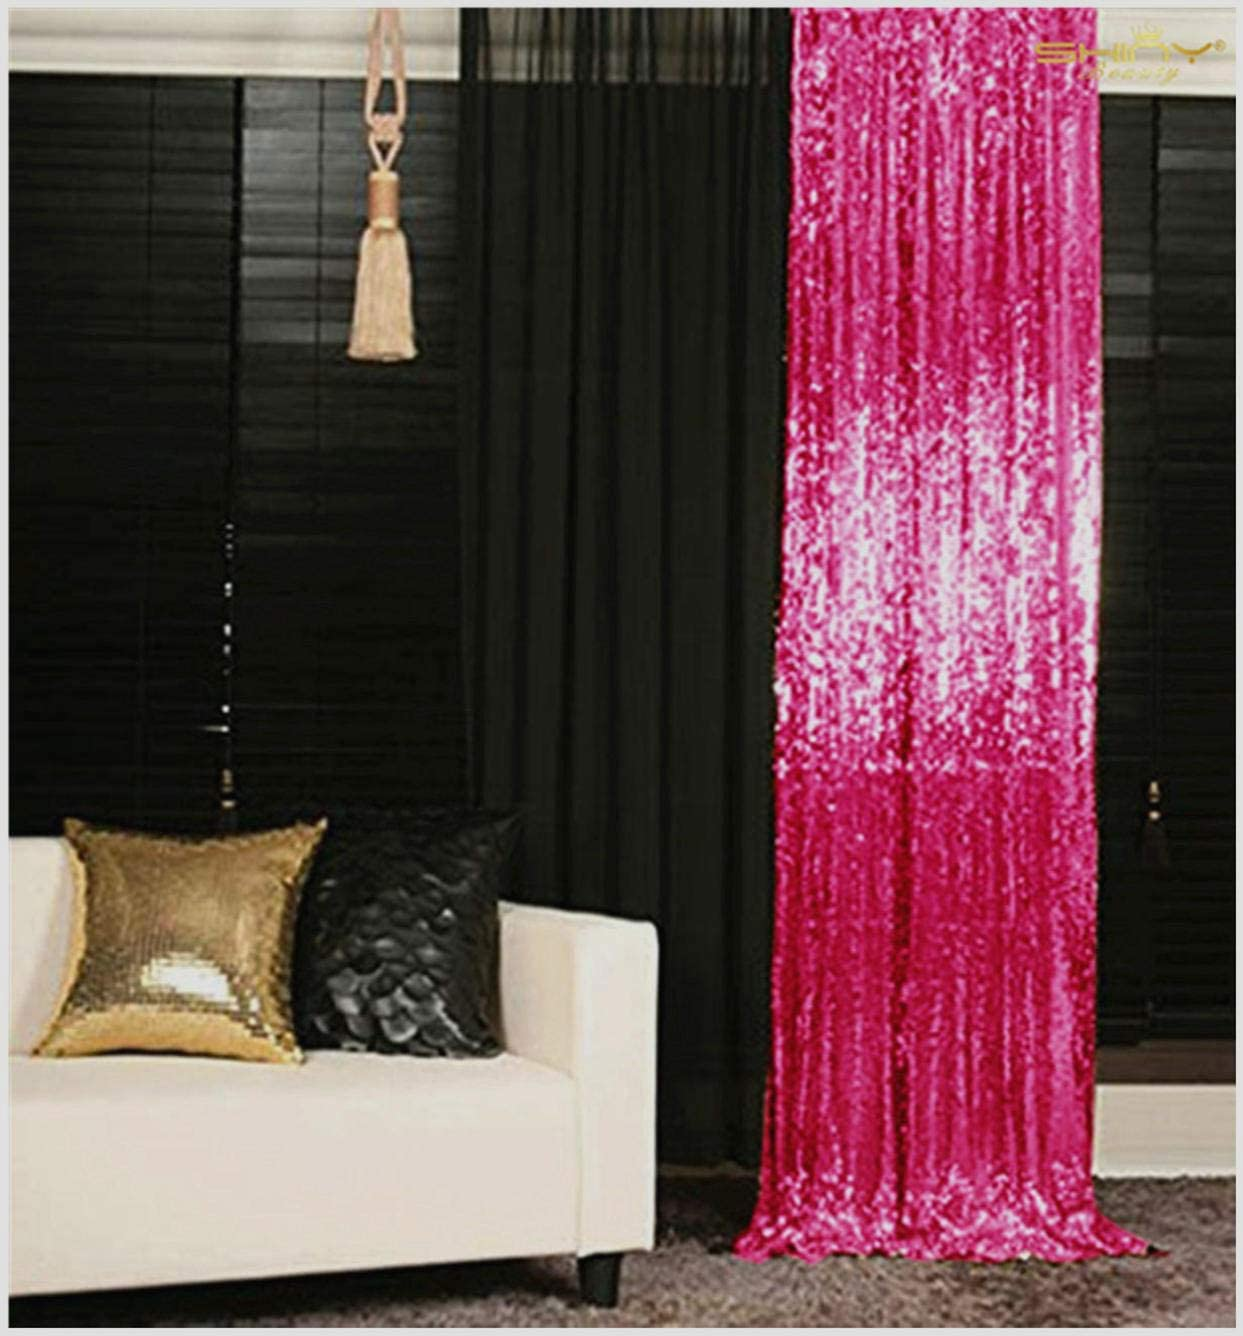 Sequin Backdrop Hot Pink 5 x 7 feet Happy Birthday Backdrop Prince Backdrop Curtains N11.01